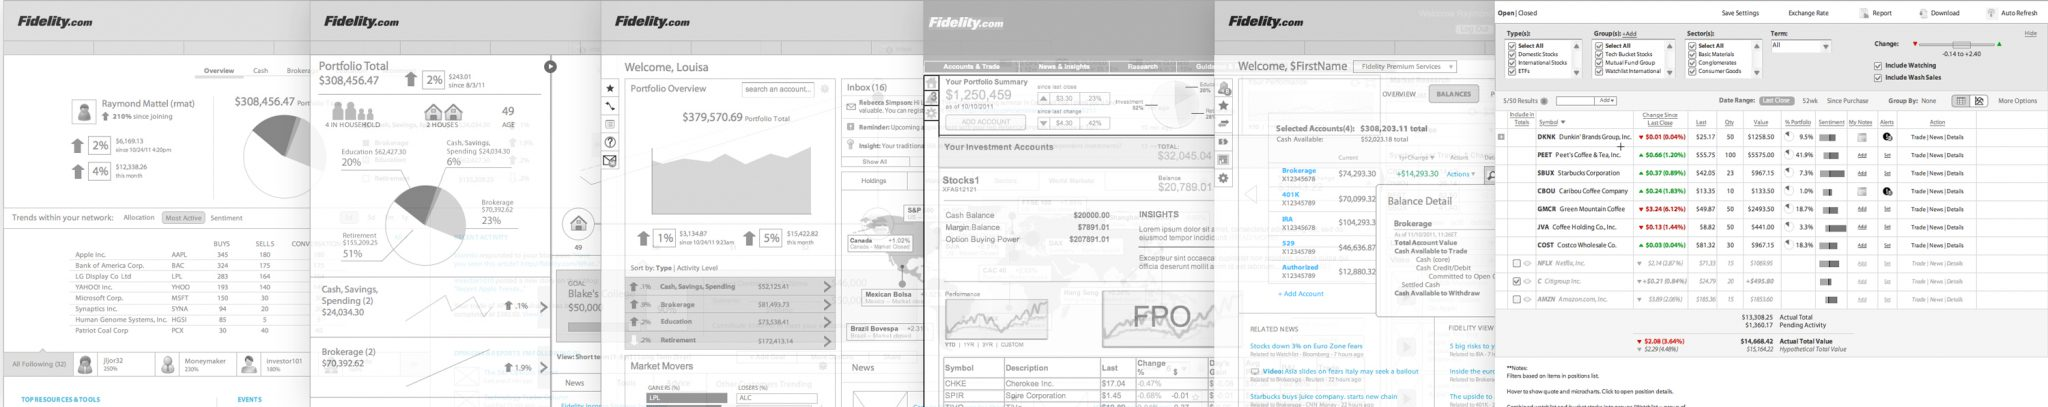 fidelity-wireframe-progression